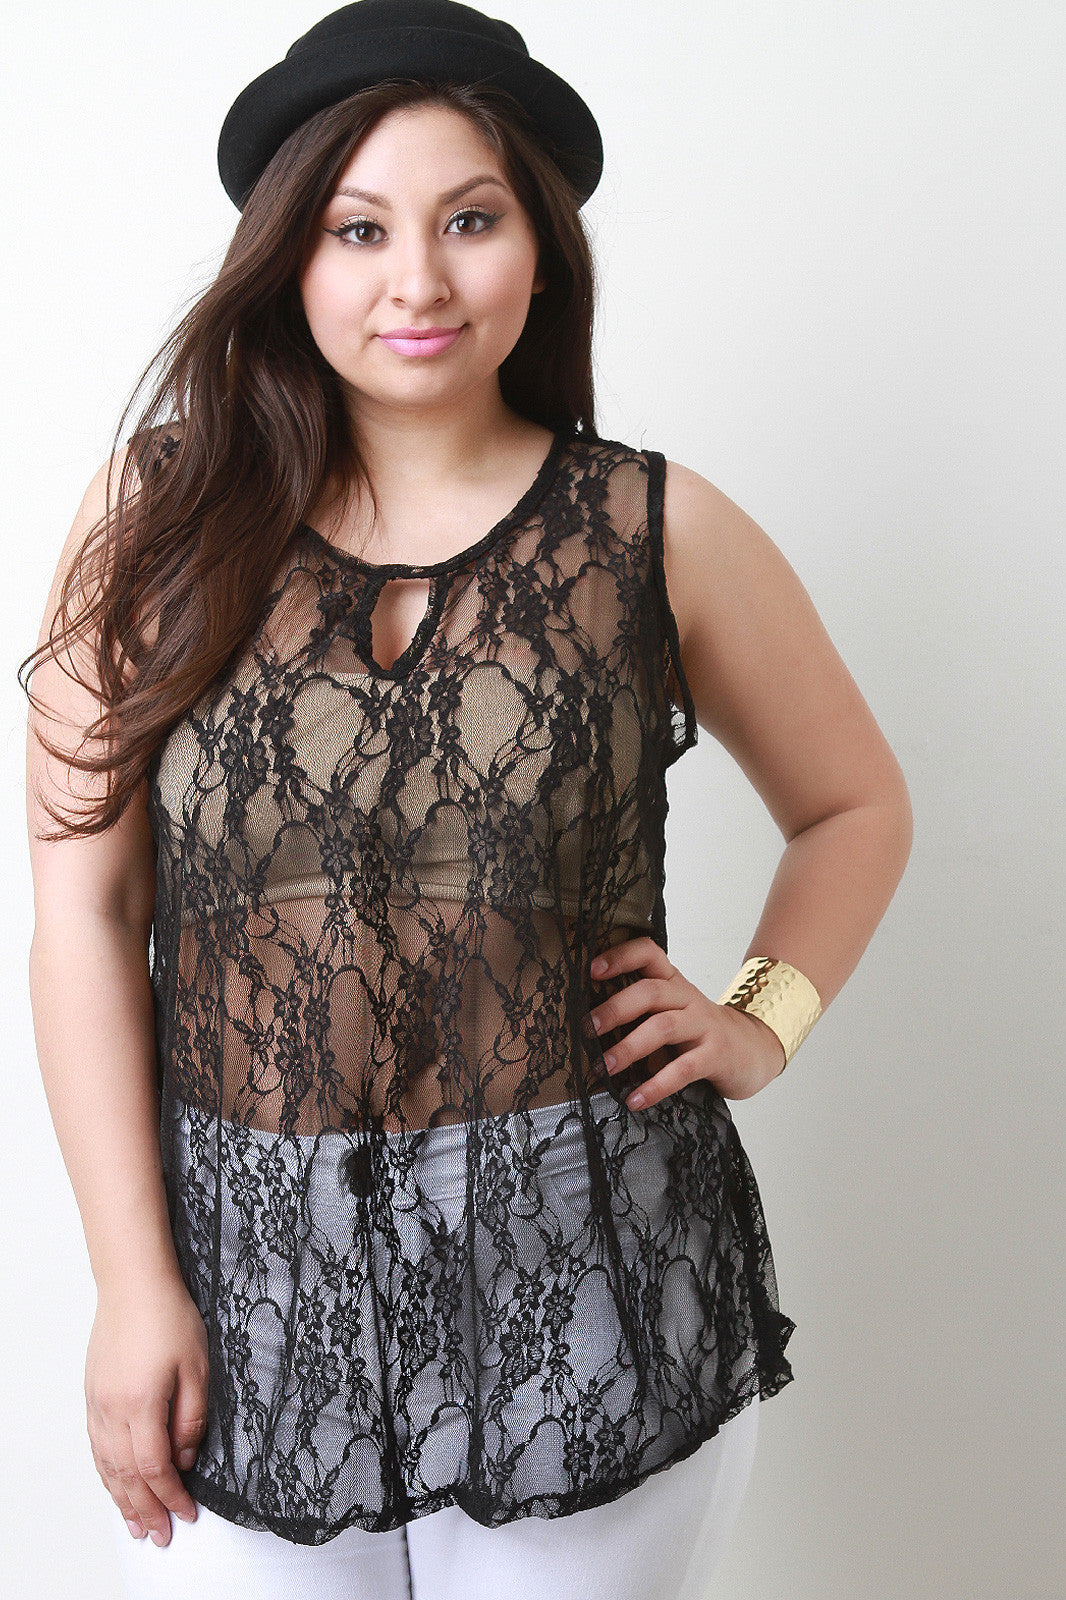 Semi-Sheer Floral Lace Keyhole Sleeveless Top - Thick 'N' Curvy Shop - 7